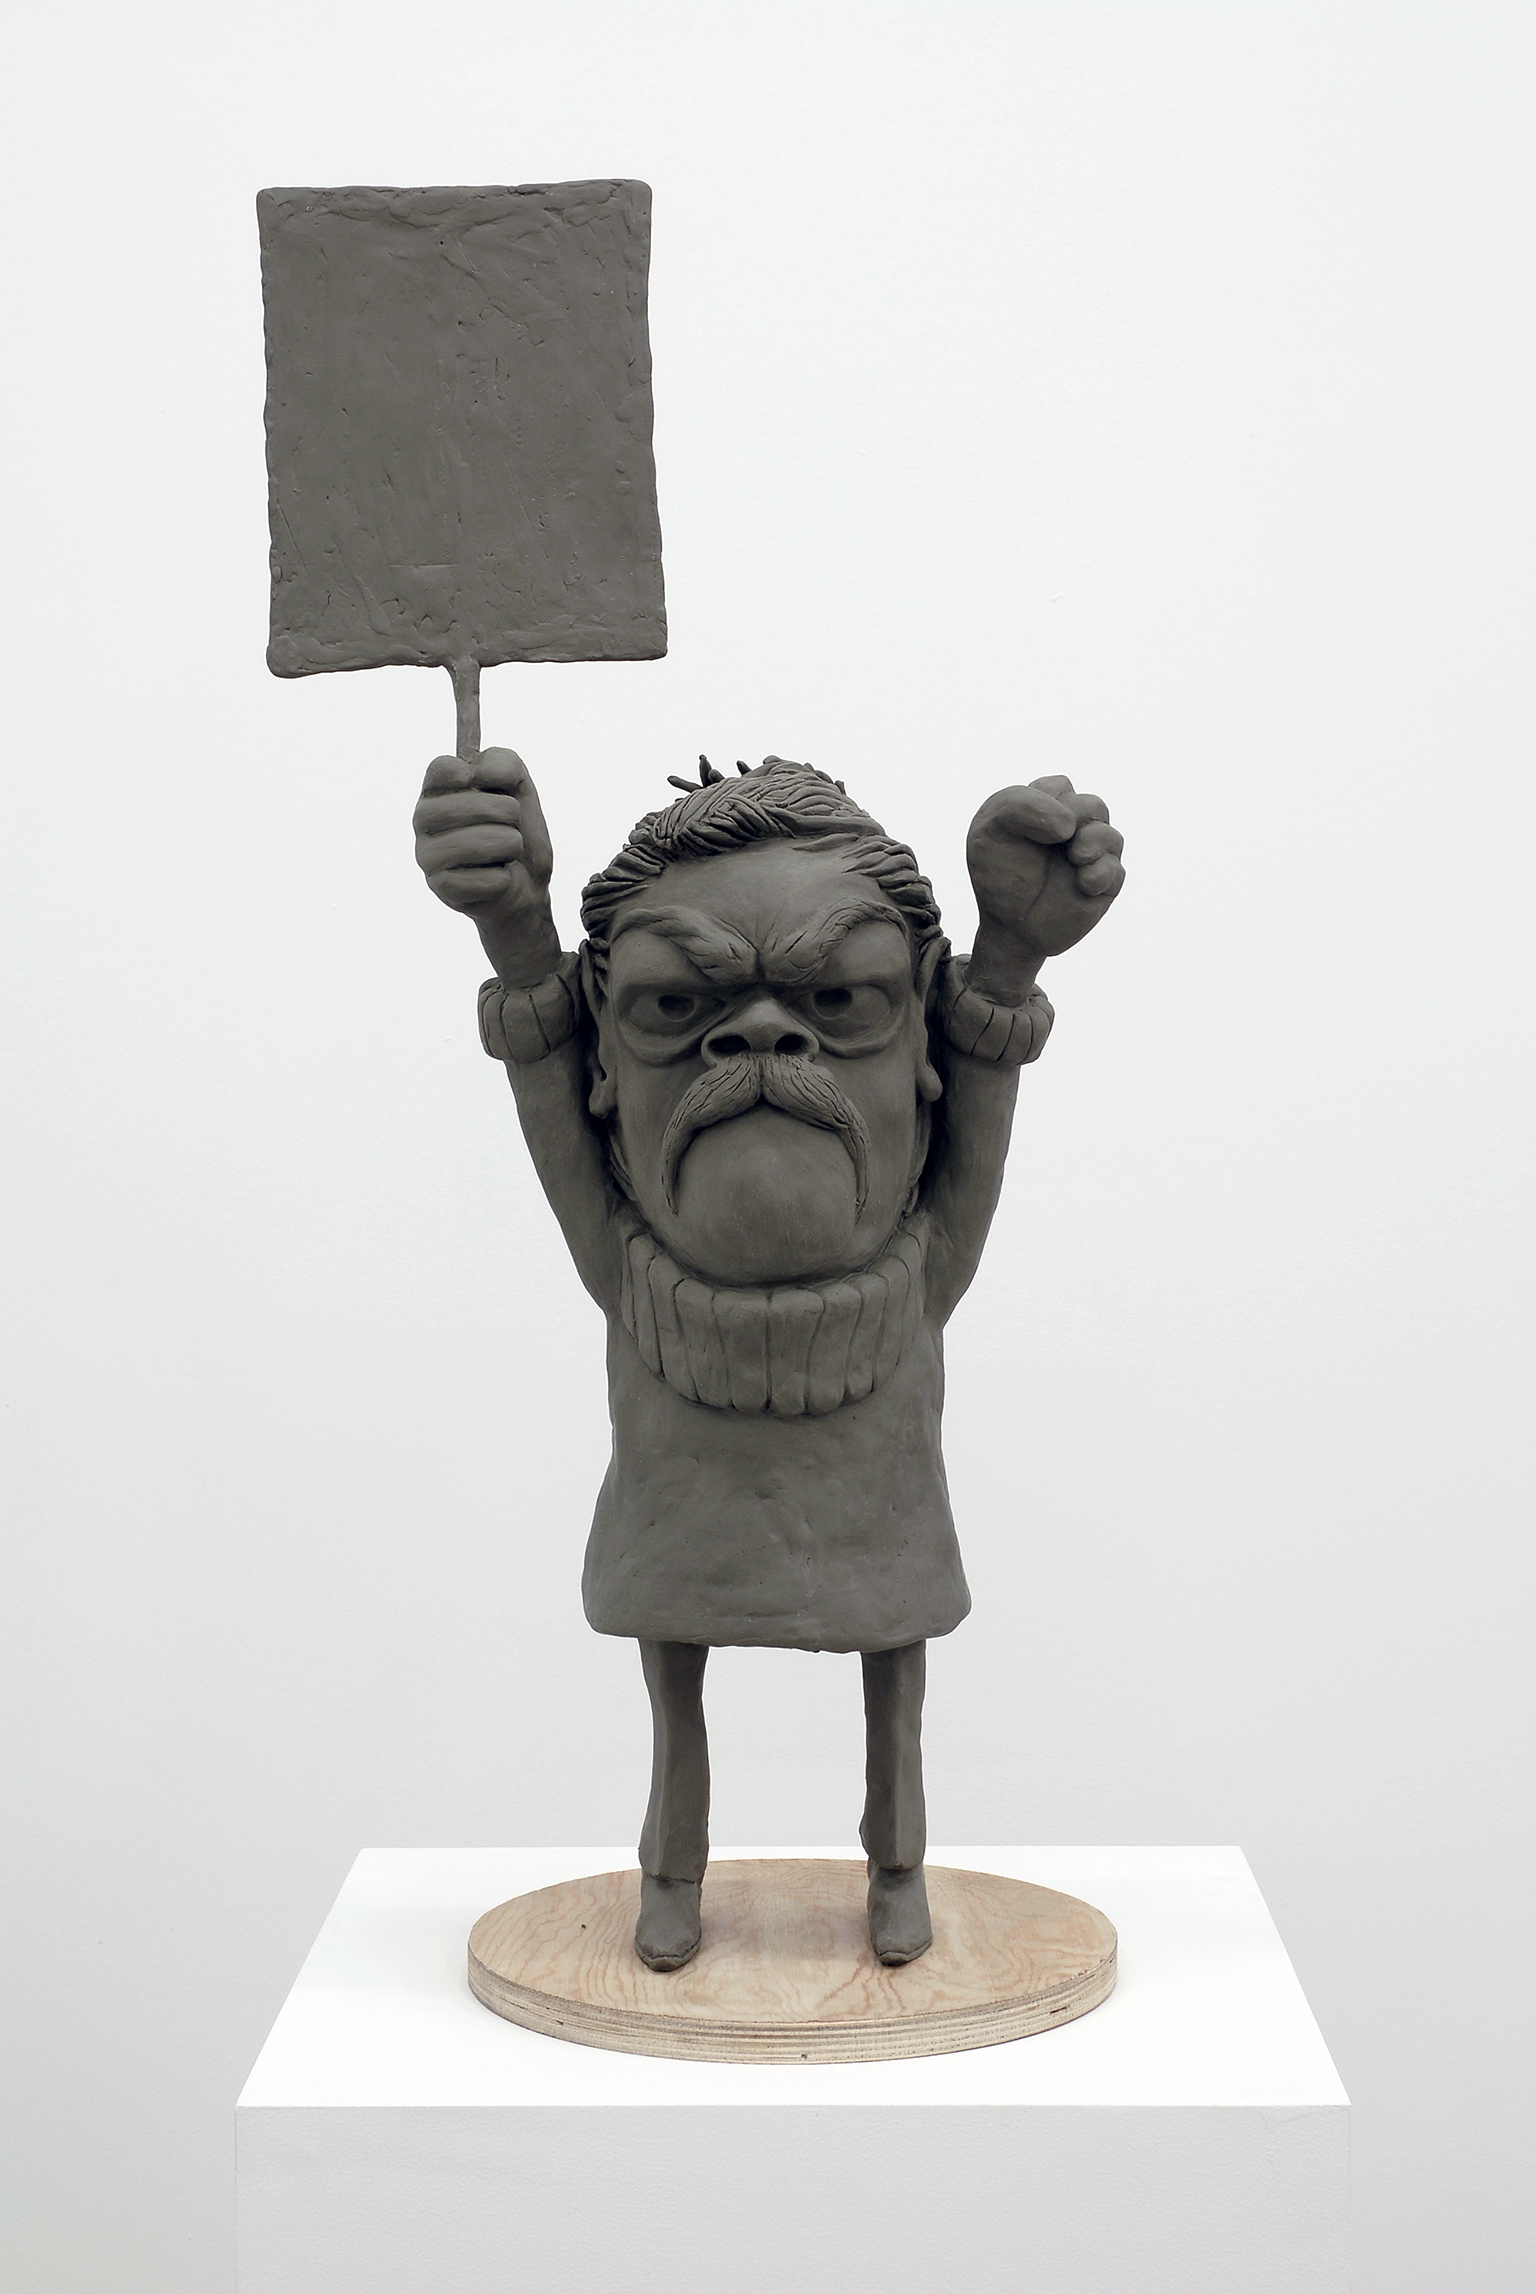 ​Alex Morrison, Proposal for a New Monument at Freedom Square, 2007, modelling clay and wood, 32 x 15 x 12 in. (81 x 38 x 30 cm) by